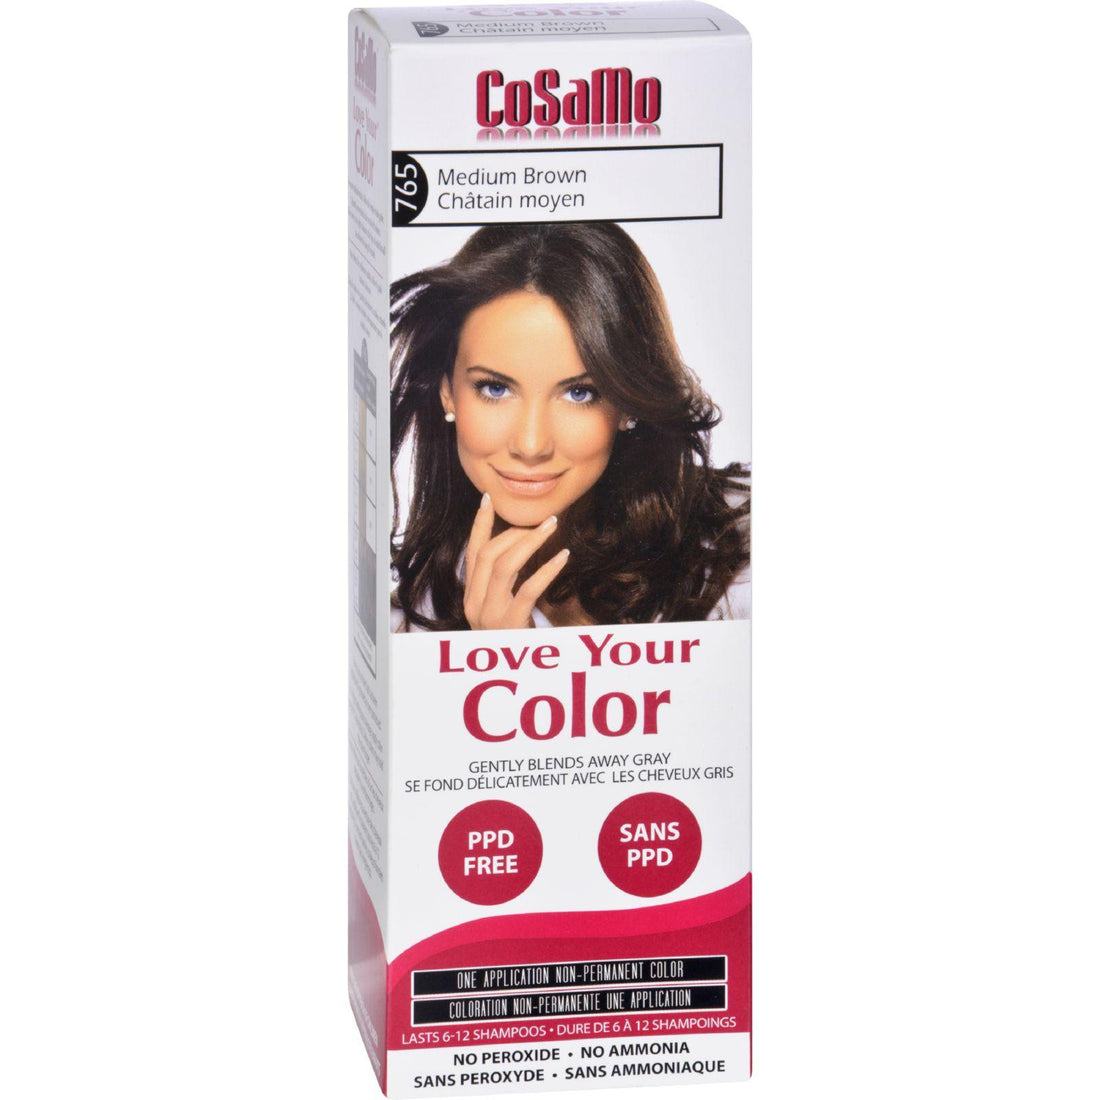 Mother Mantis: Love Your Color Hair Color - Cosamo - Non Permanent - Medium Brown - 1 Ct Love Your Color